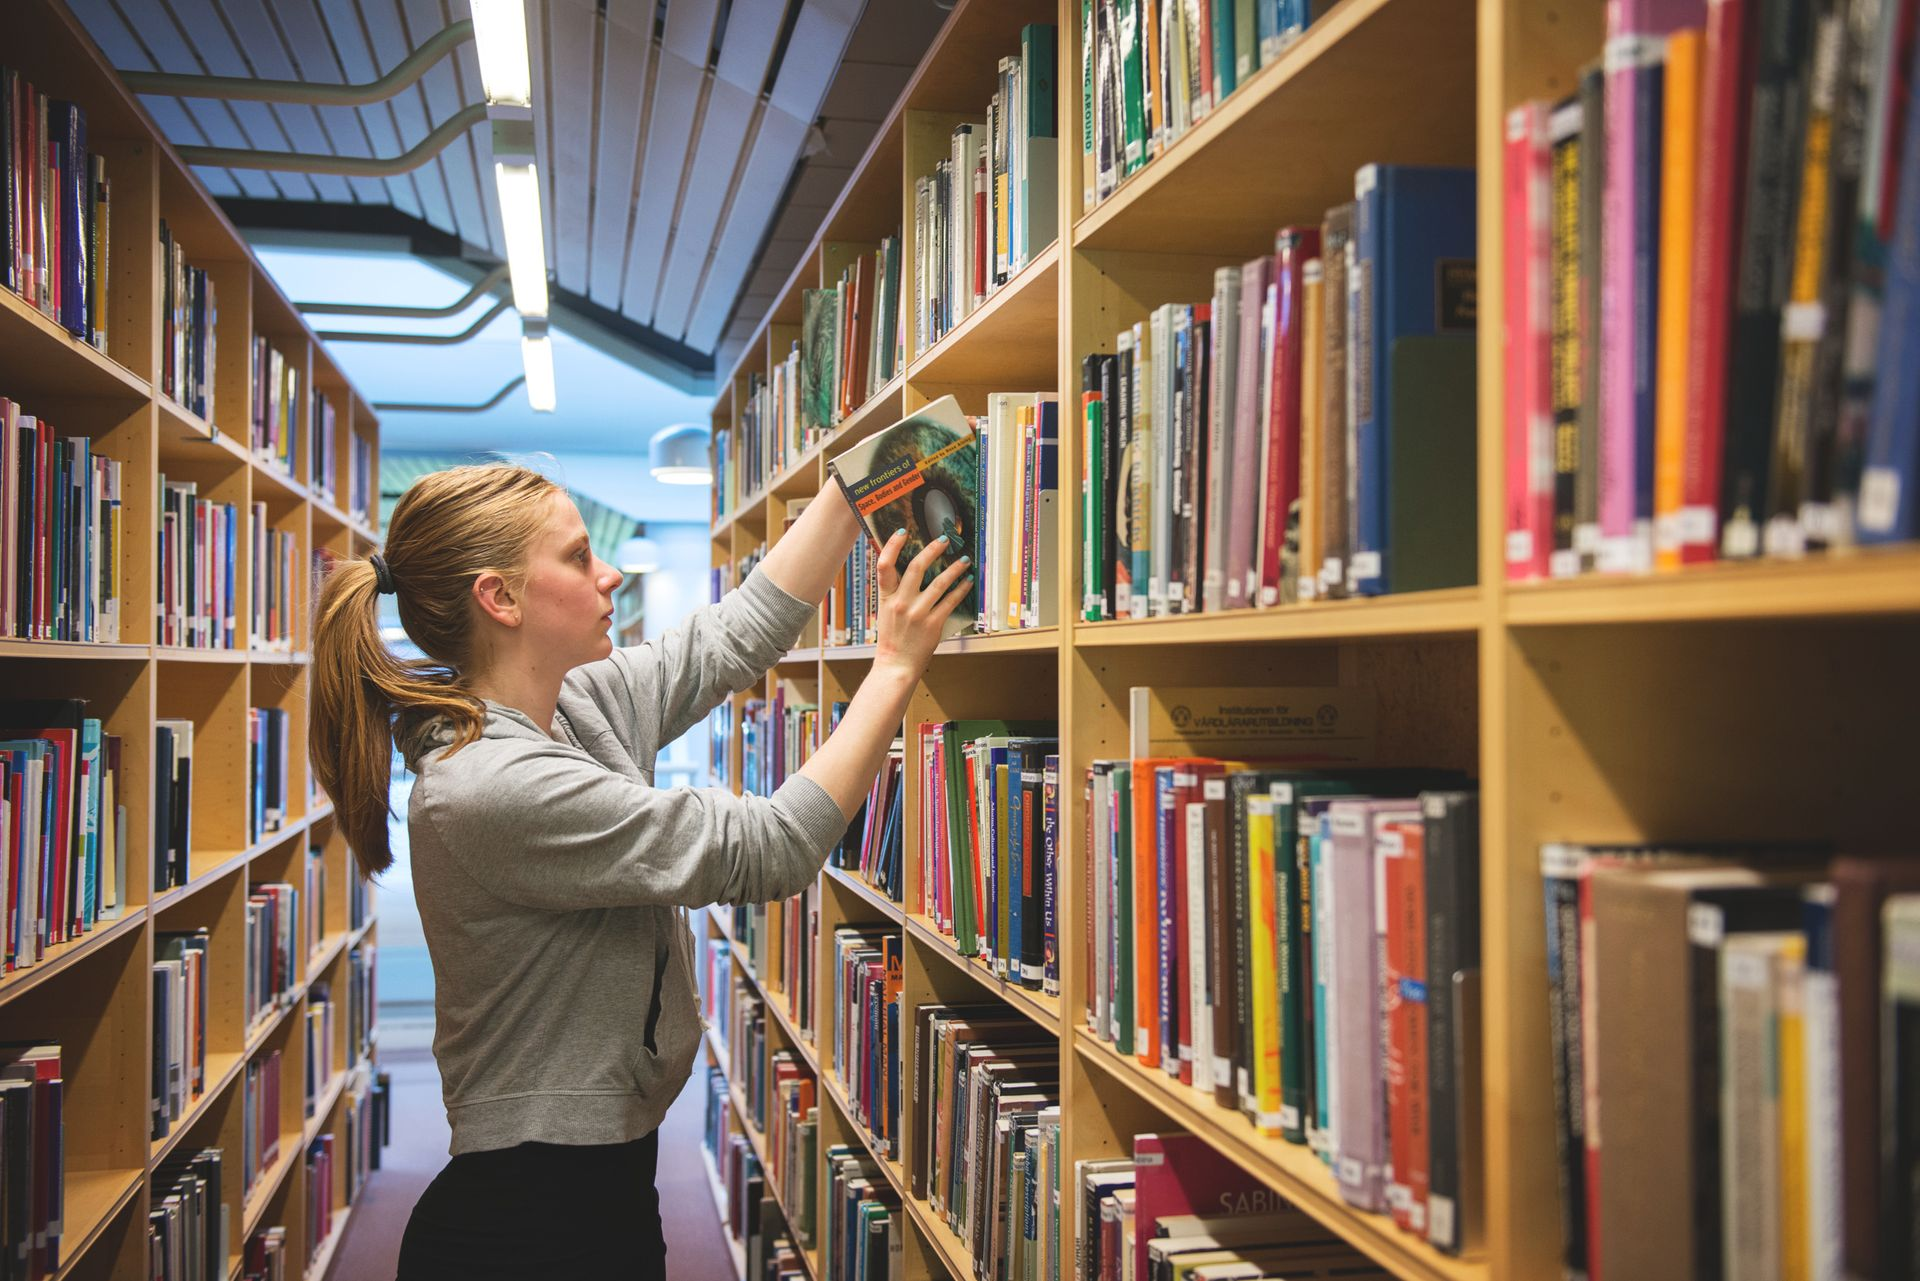 Student in a university library reaching to a high shelf to remove a book.